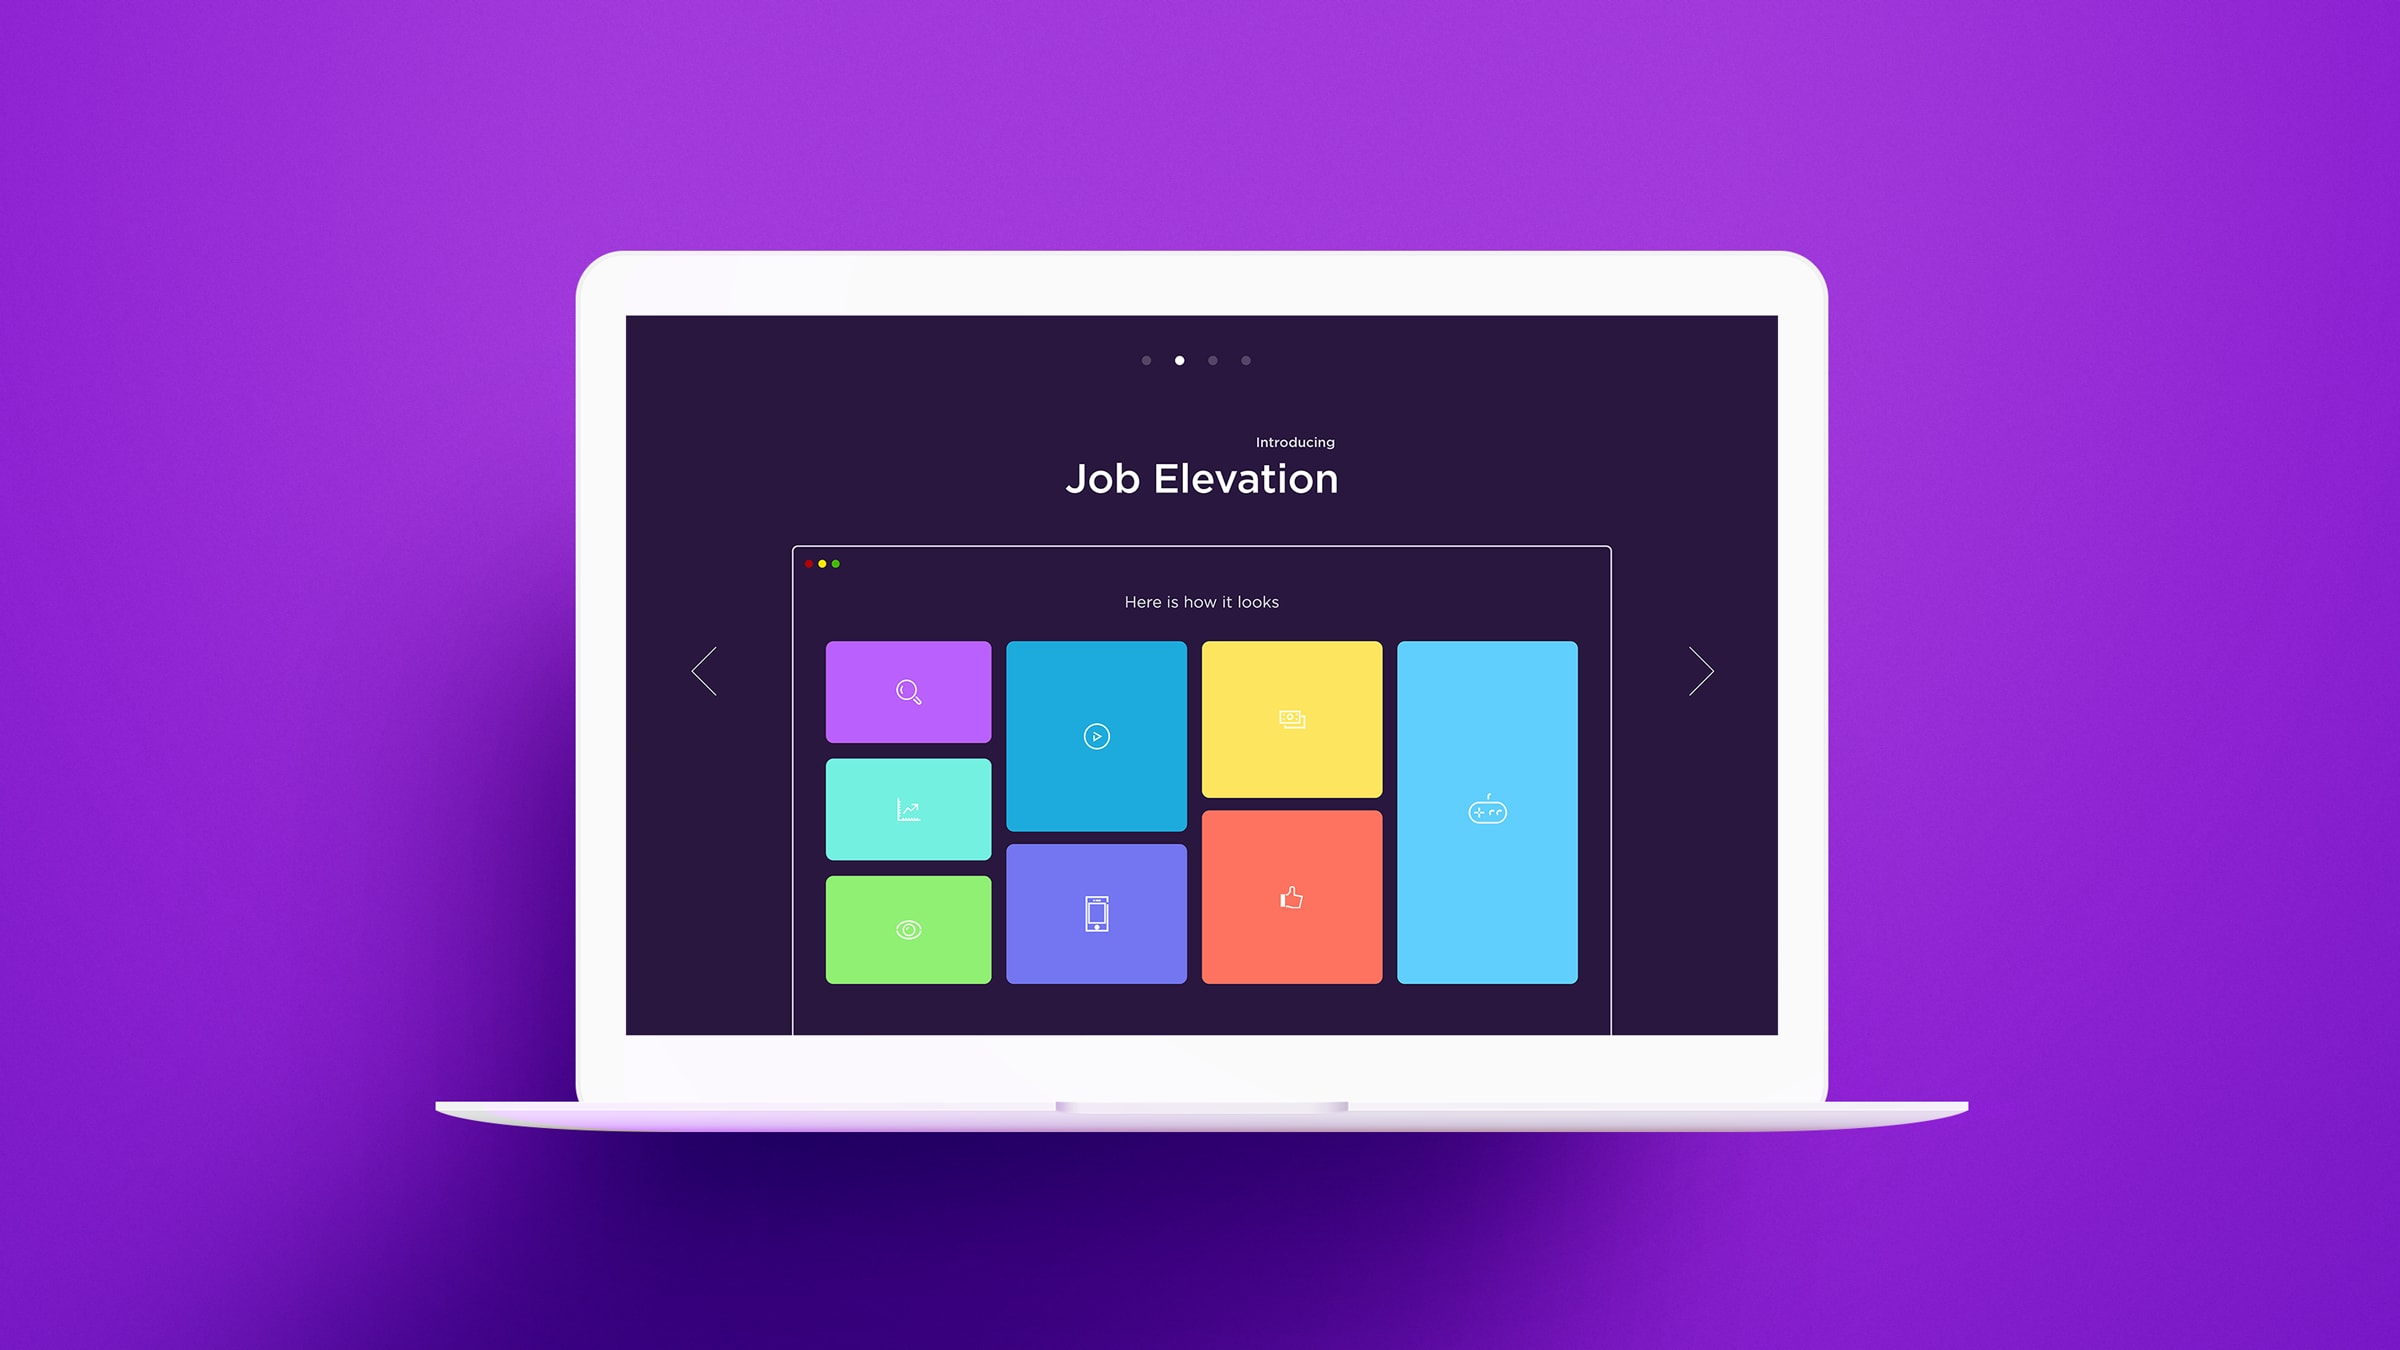 Job Elevation